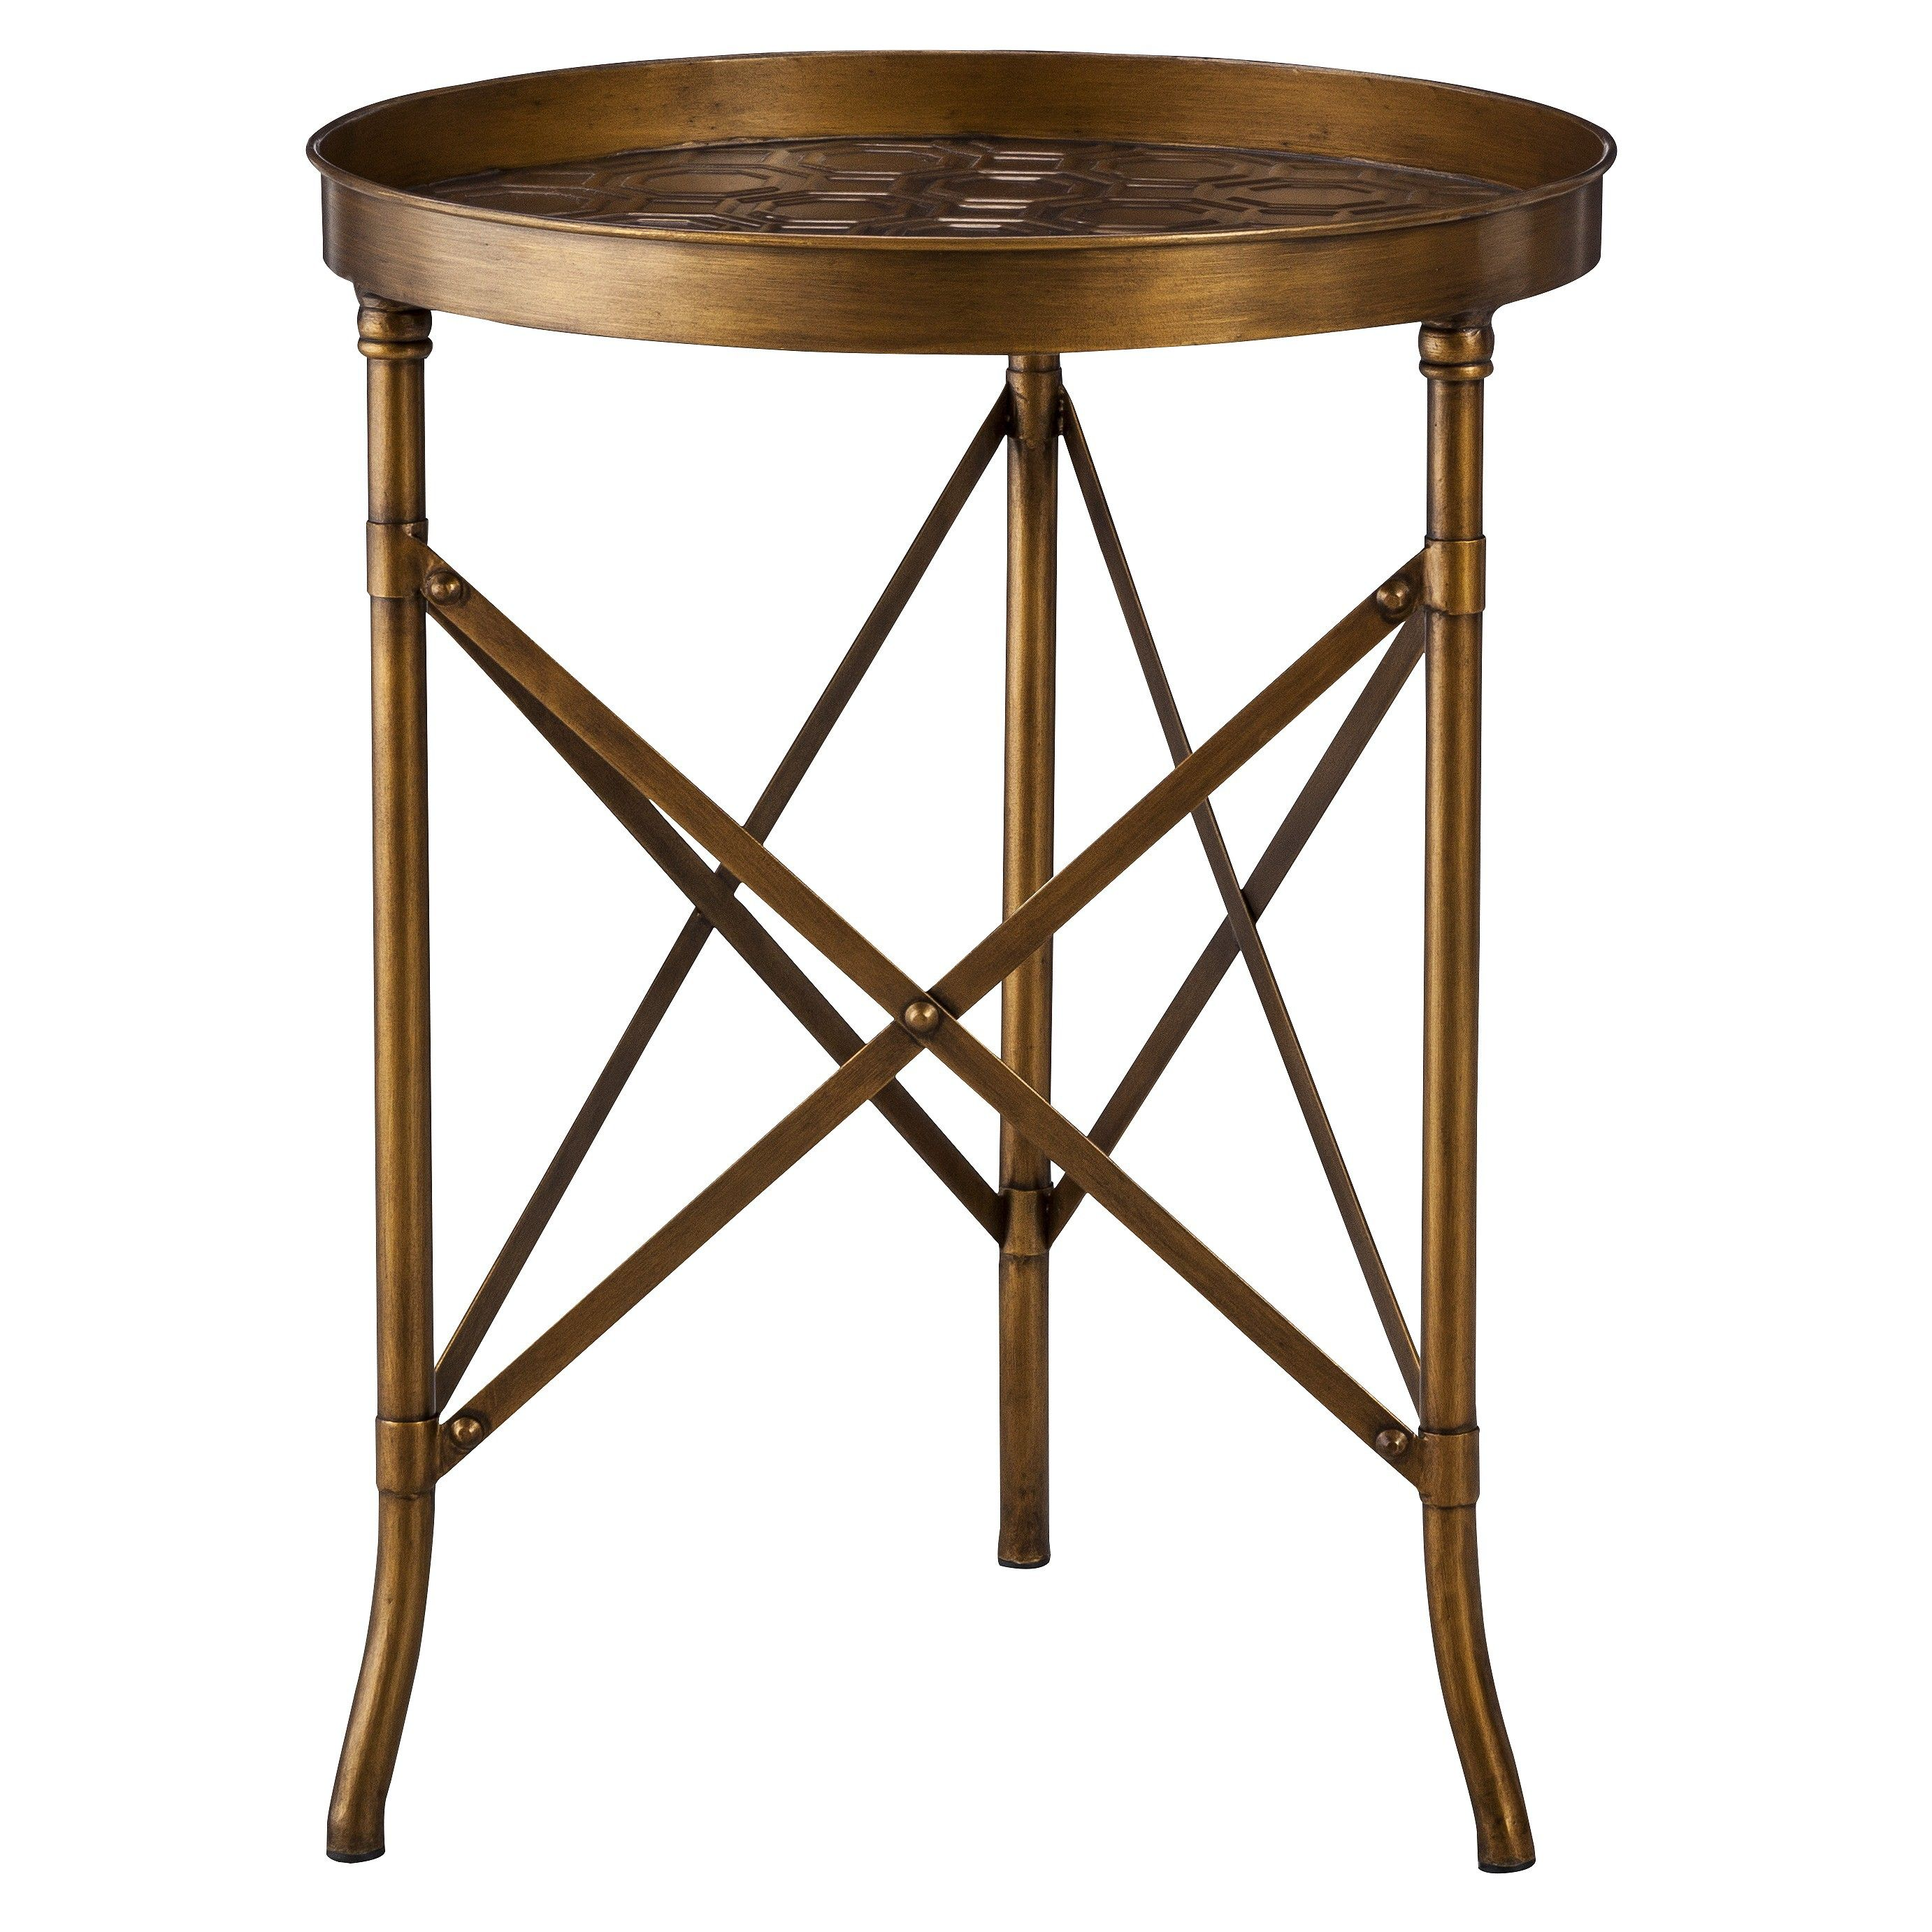 threshold stamped metal accent table gold target nightstand high round dining rustic pedestal small triangle end bedroom chairs arrow cantilever umbrella base big lots kitchen